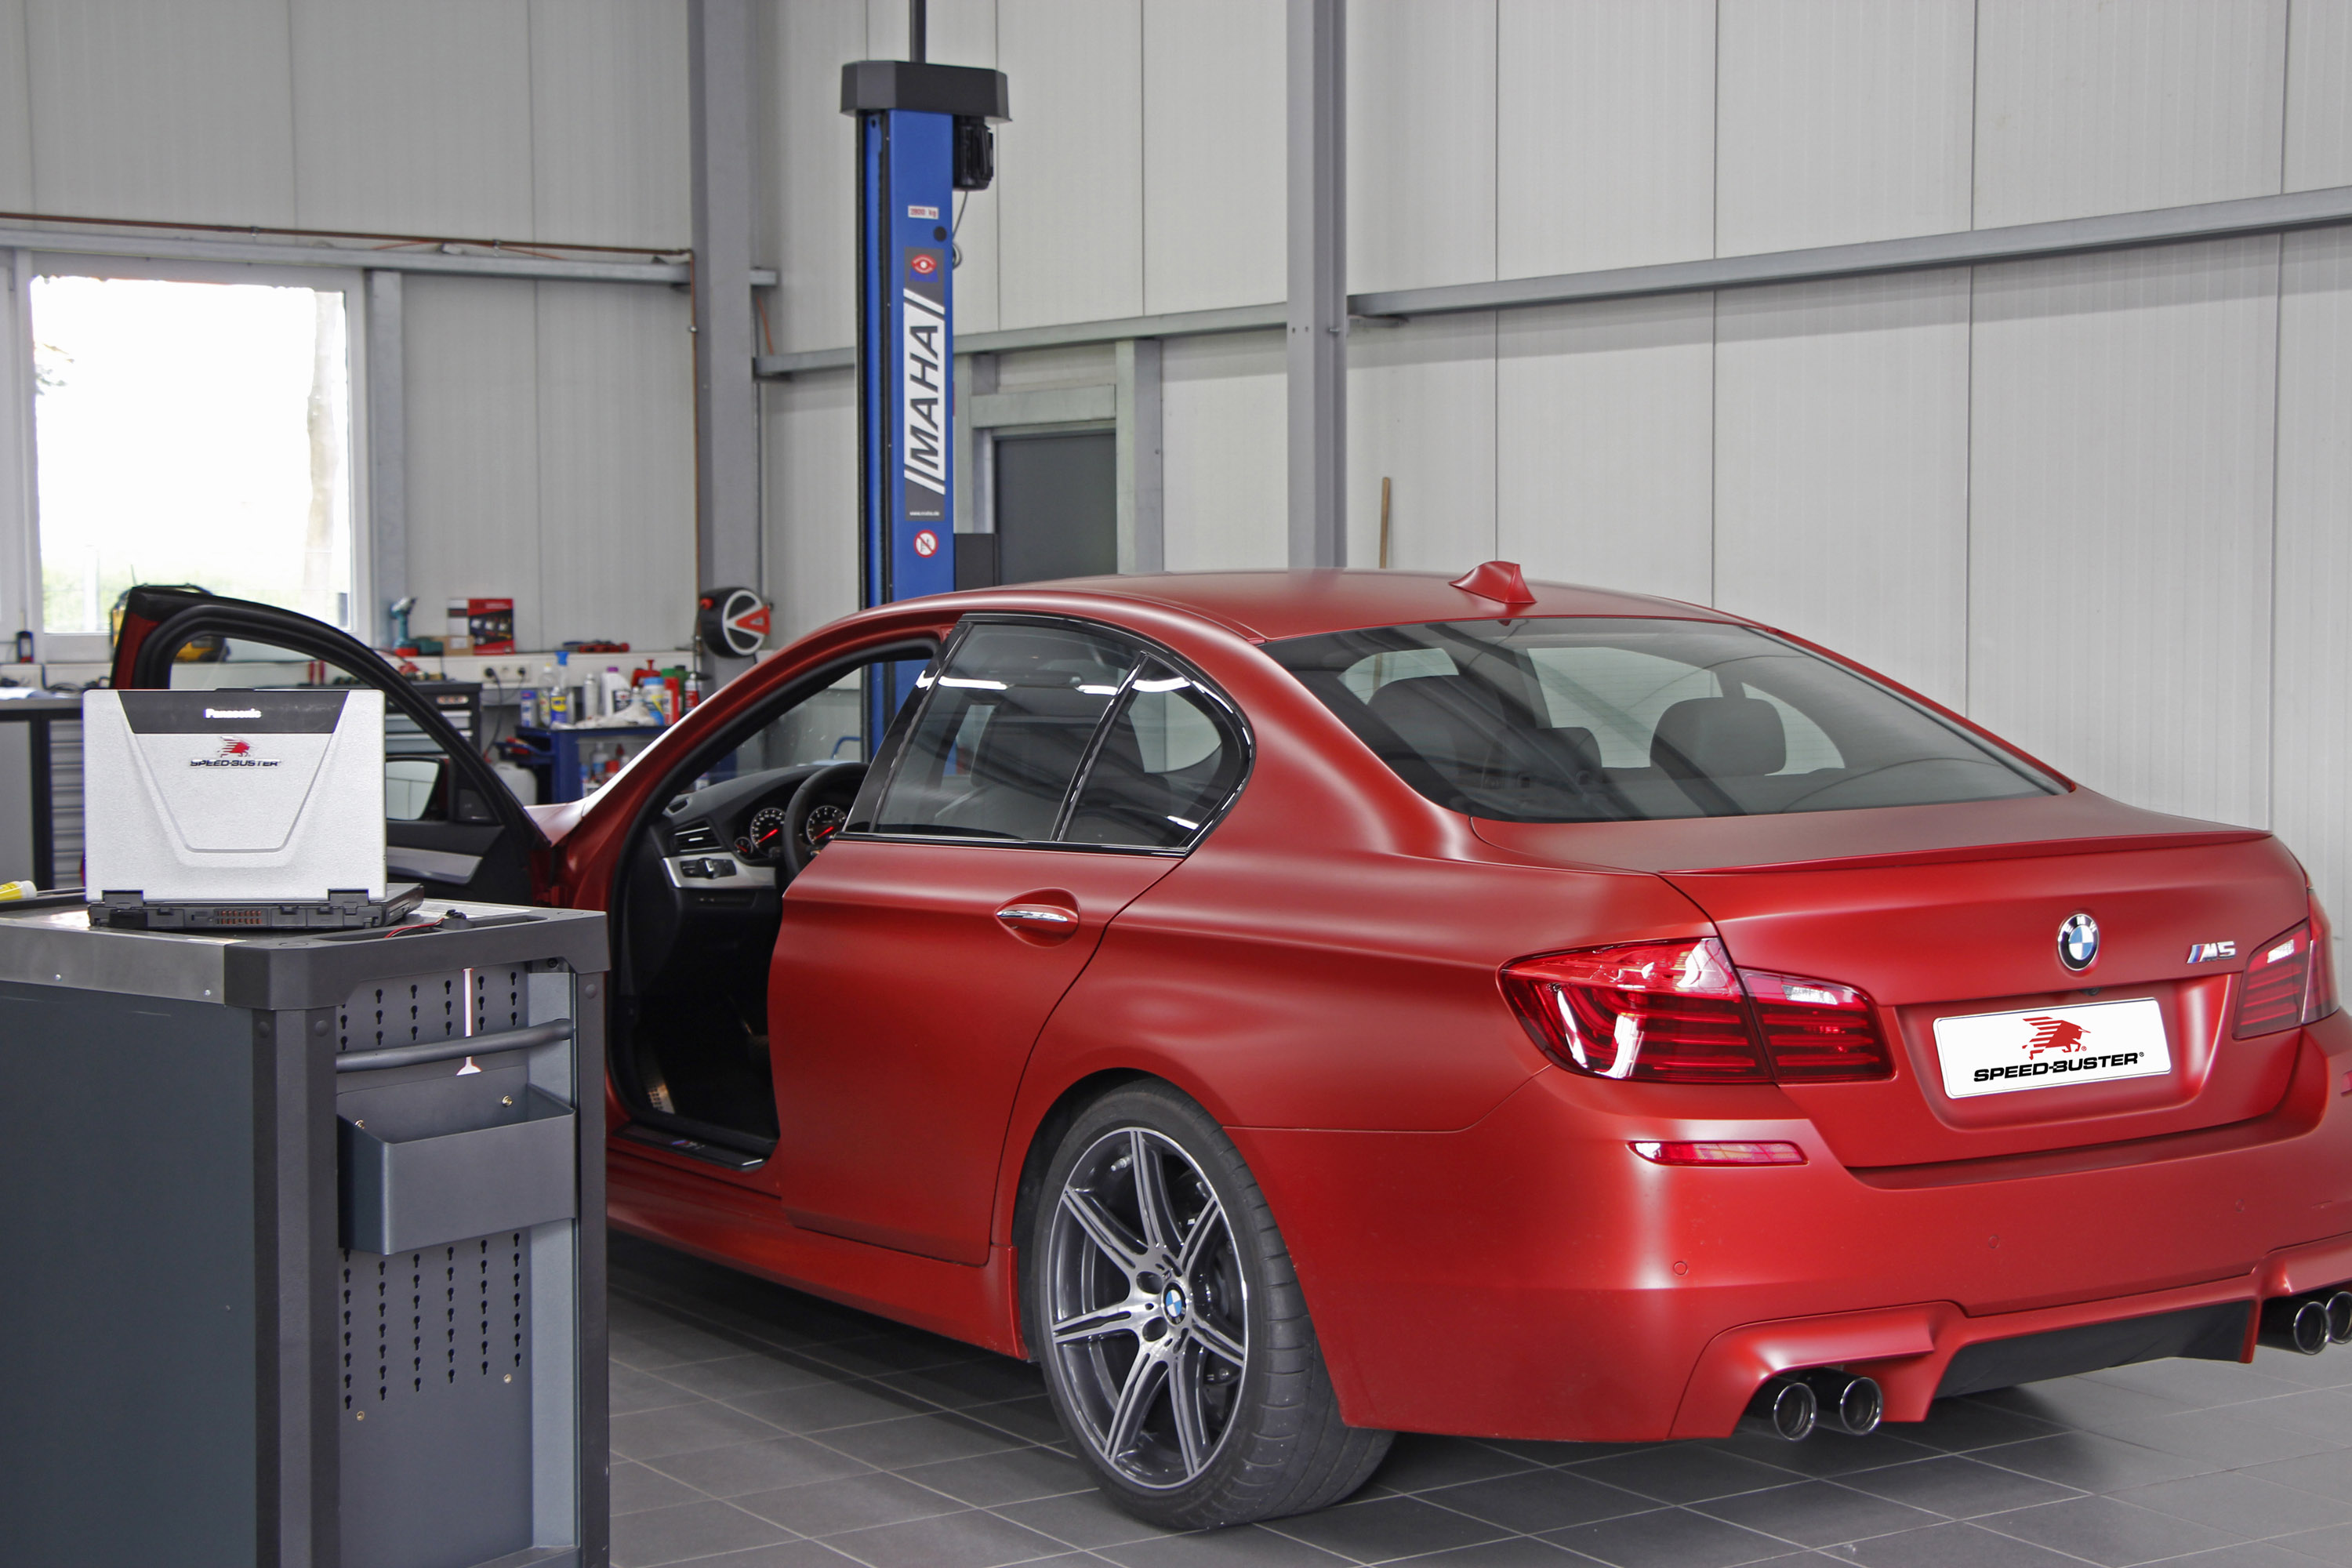 Speed Buster releases power upgrade for BMW M5 F10